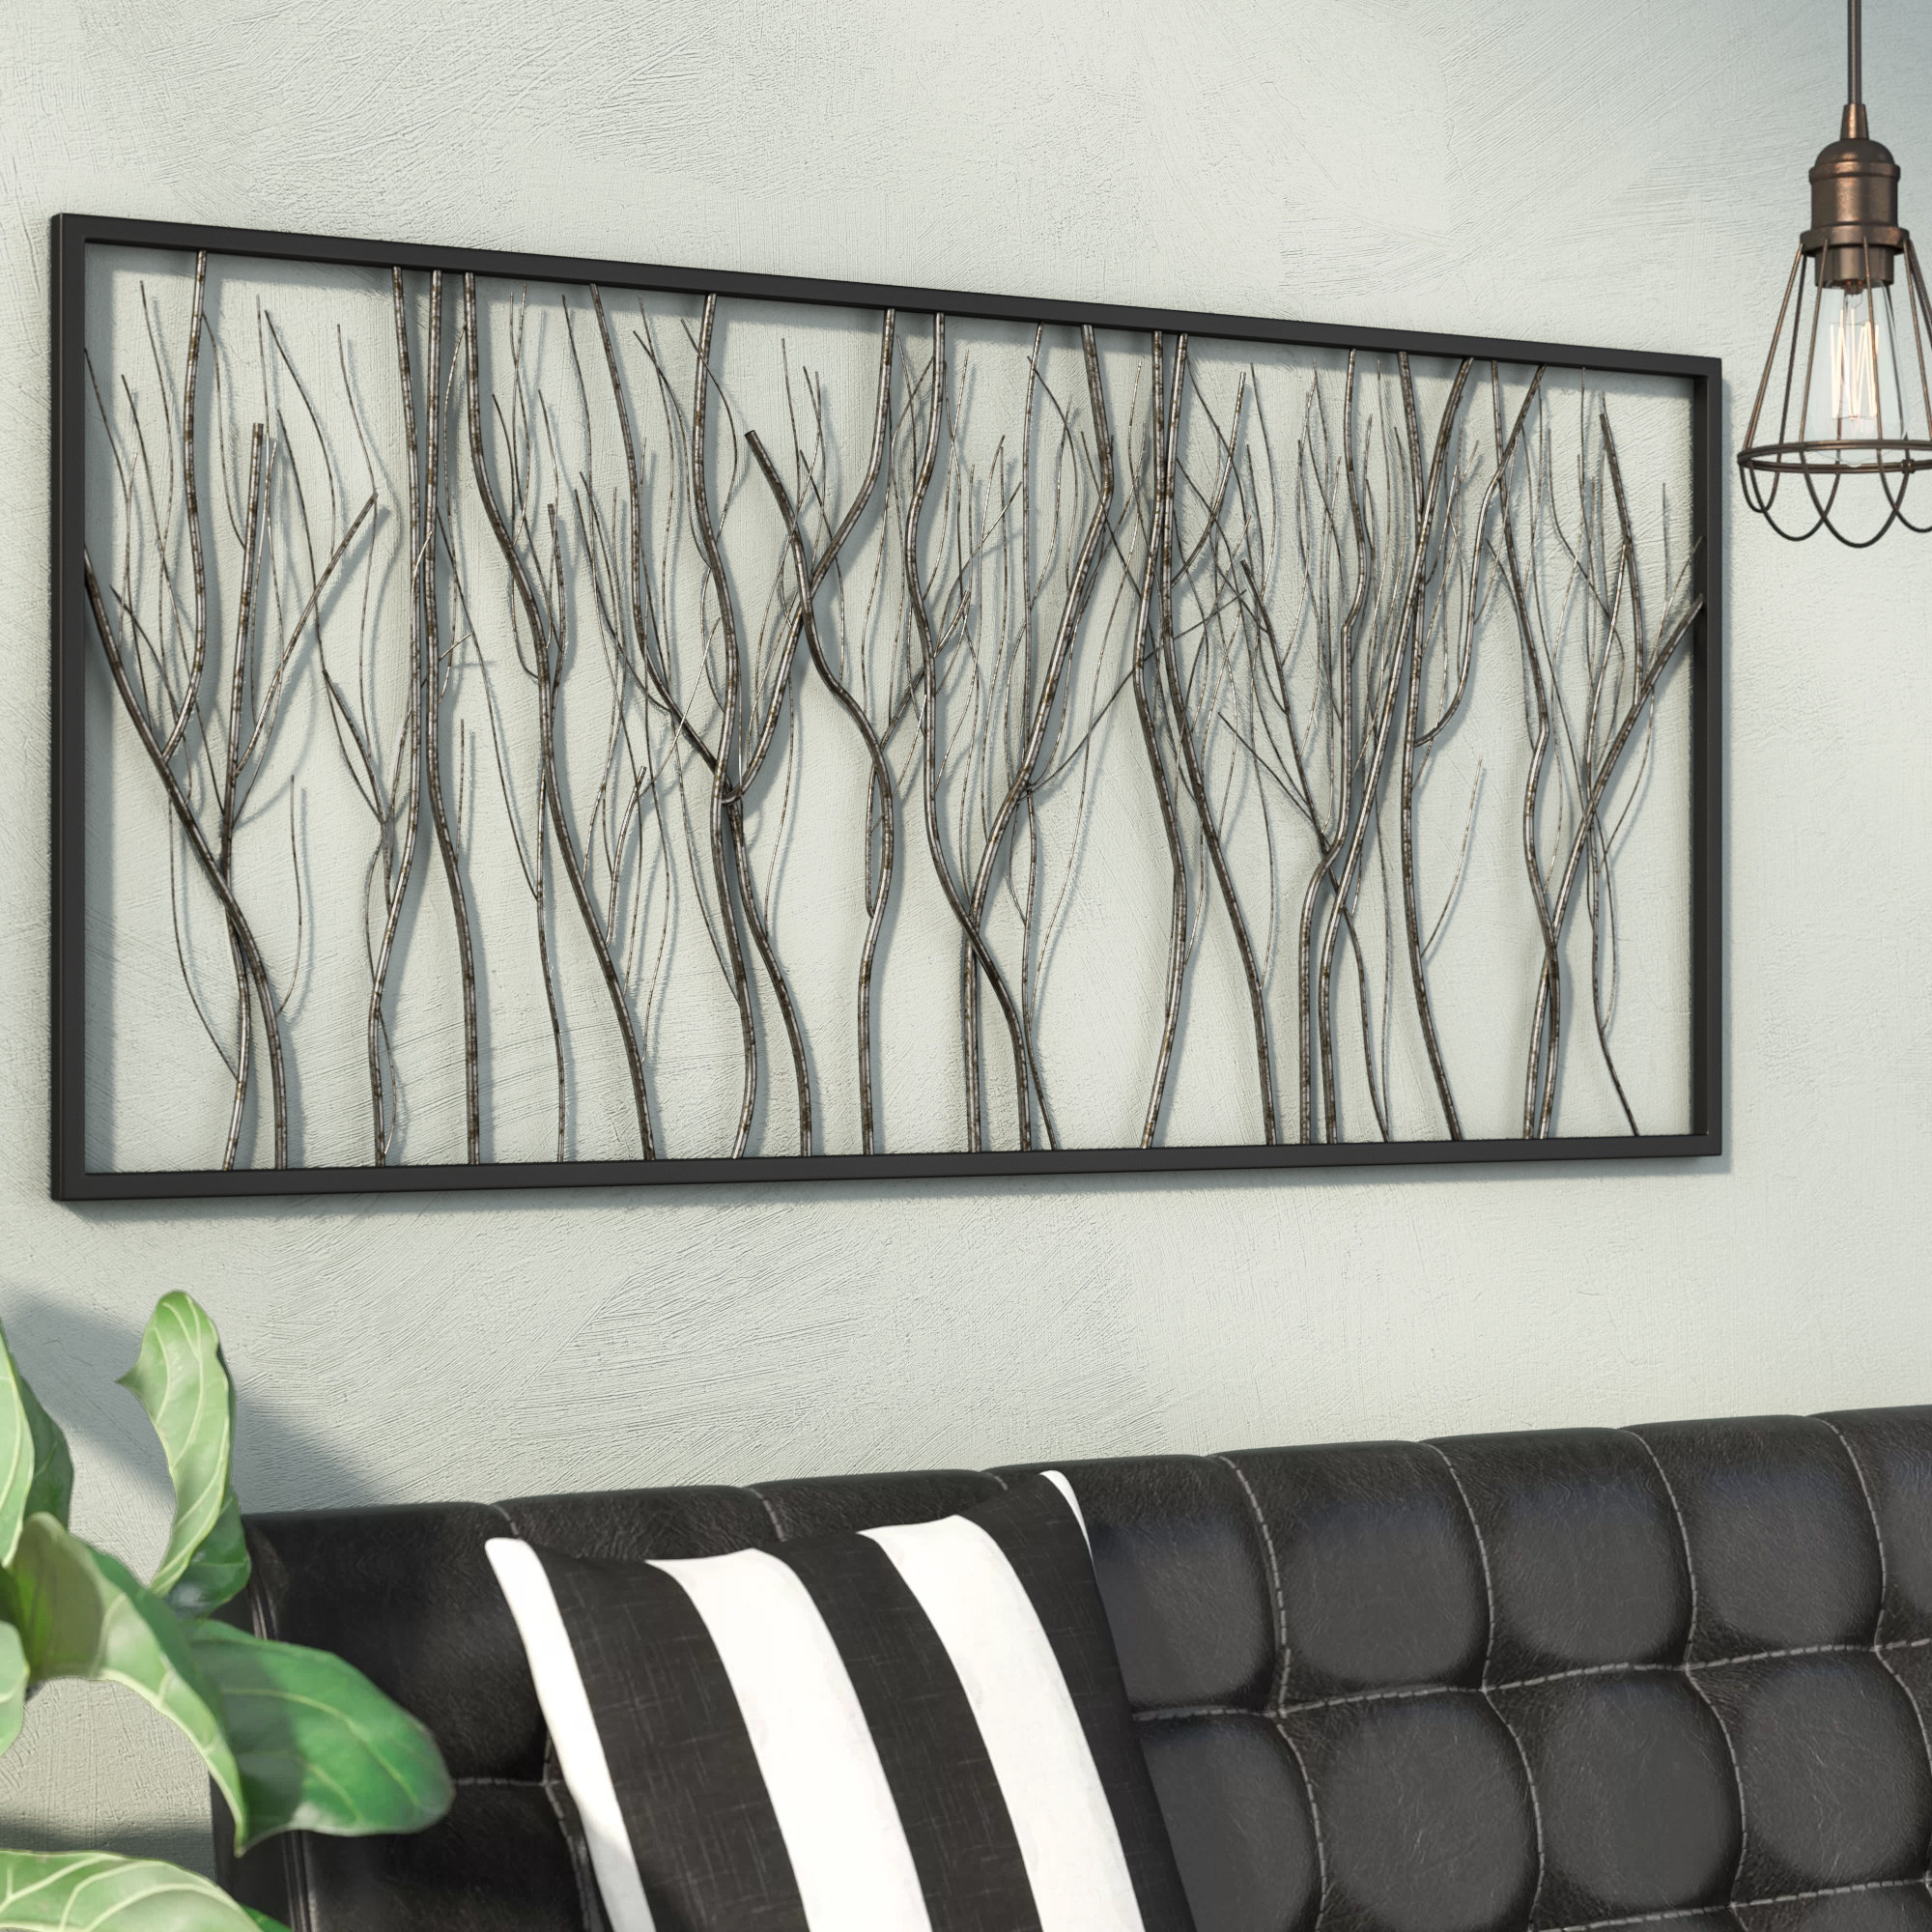 Windswept Tree Wall Decor By World Menagerie Inside 2019 17 Stories Natural Twigs And Branches Iron Wall Décor & Reviews (View 6 of 20)